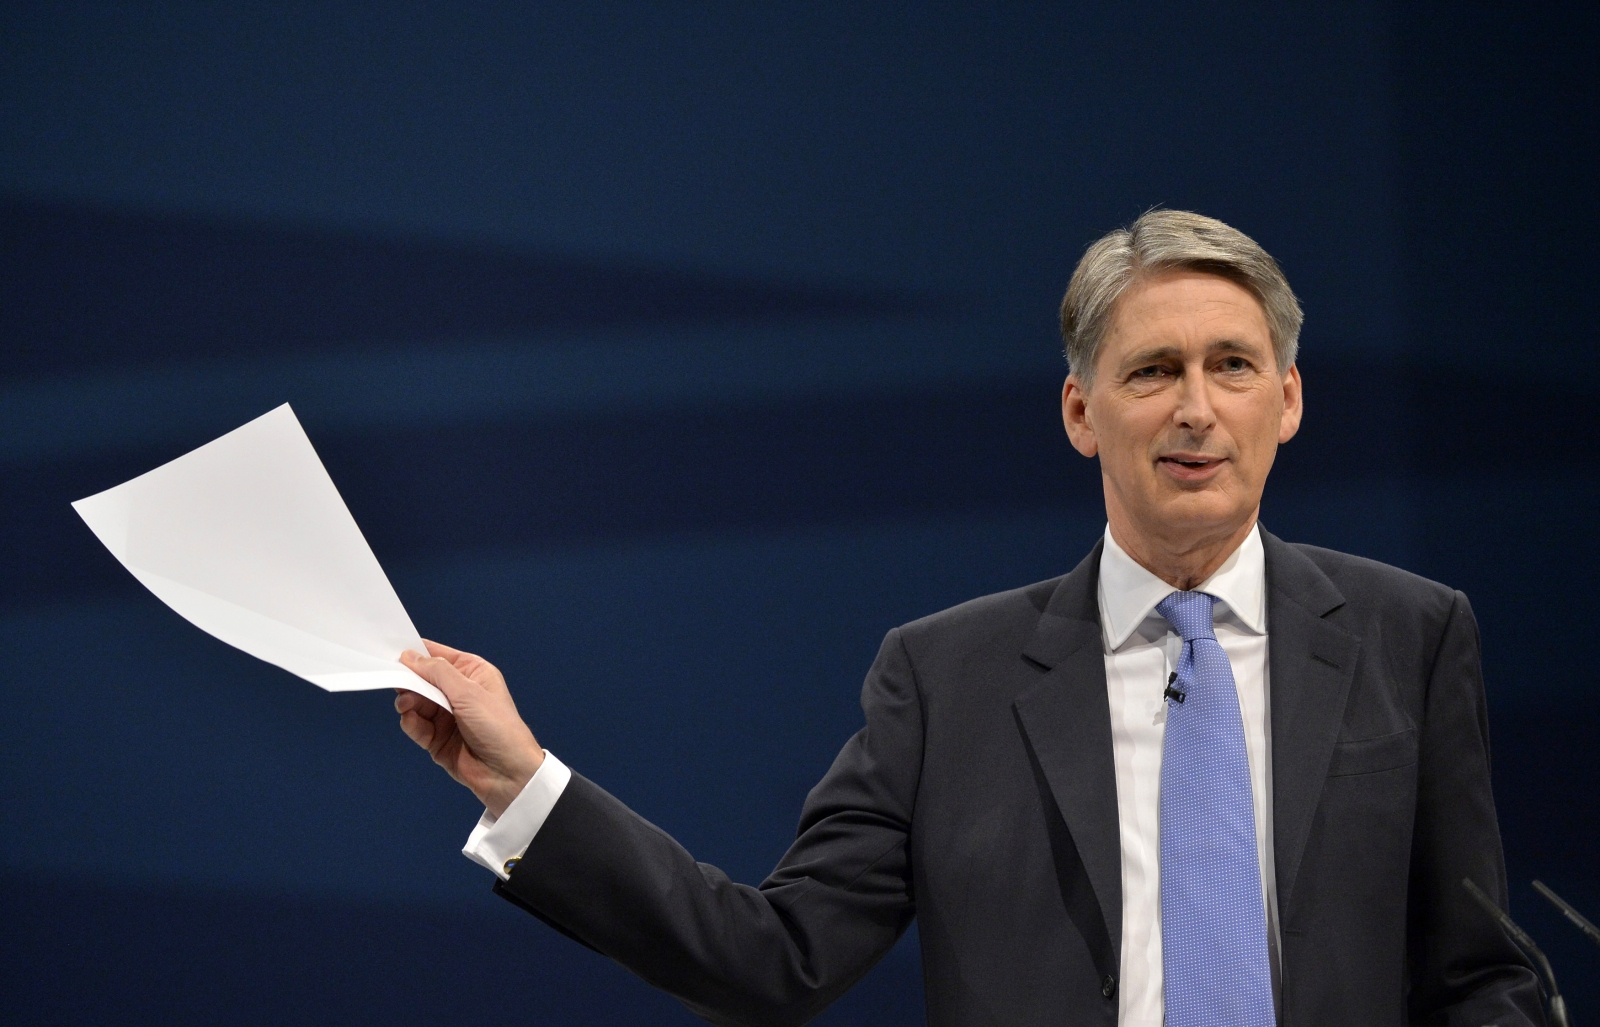 Phillip Hammond - Foreign Secretary